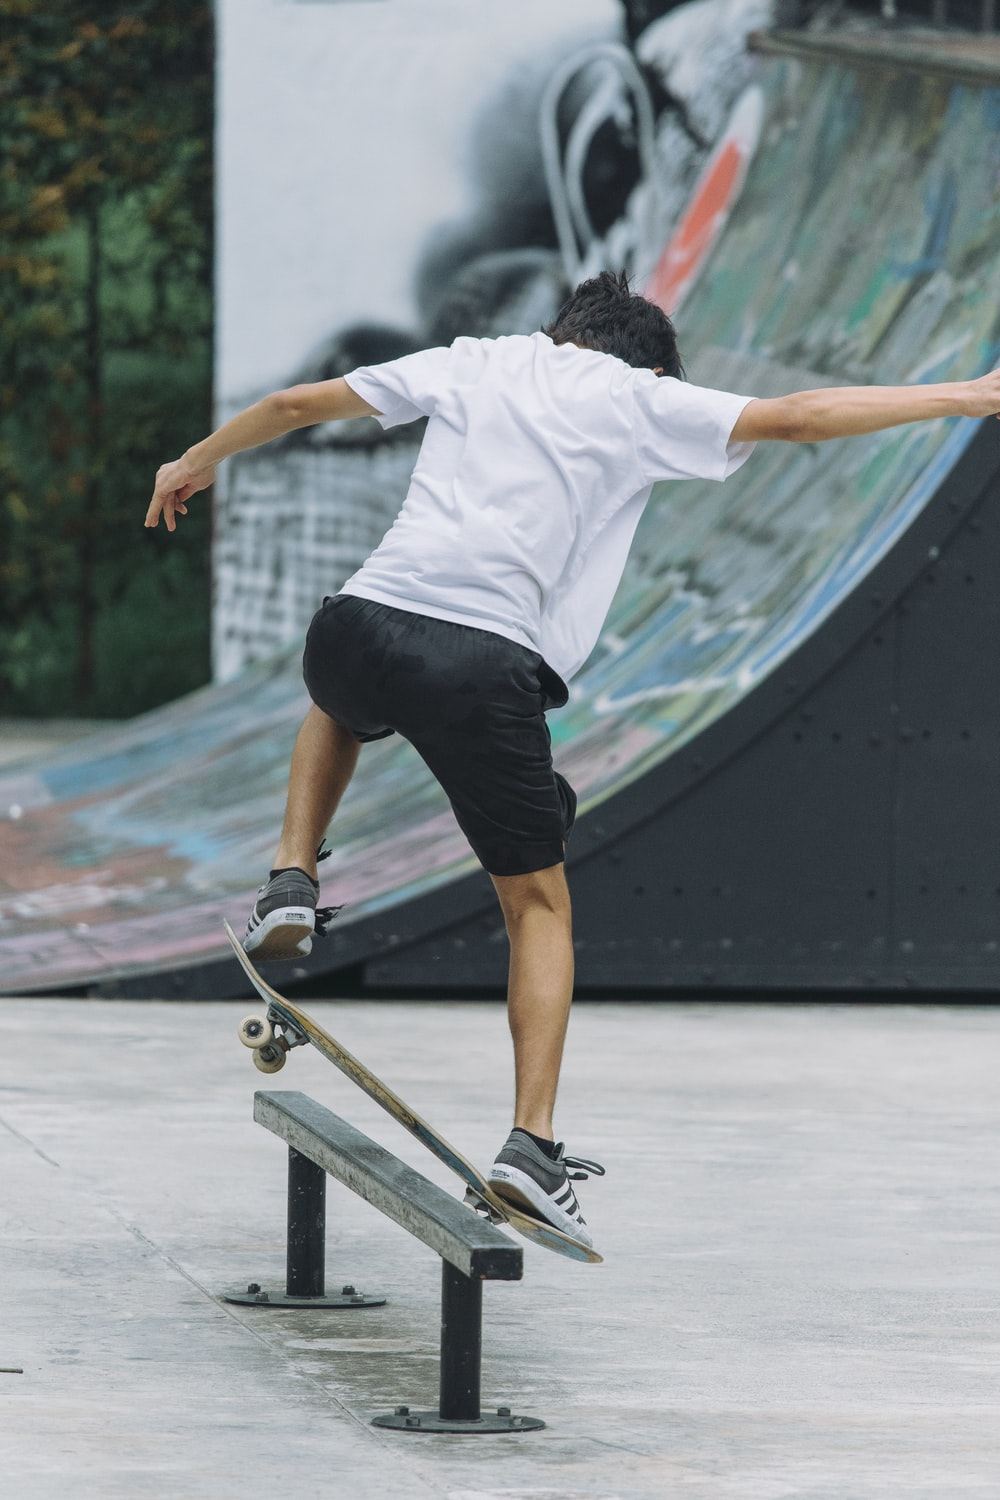 man playing skateboard during daytime